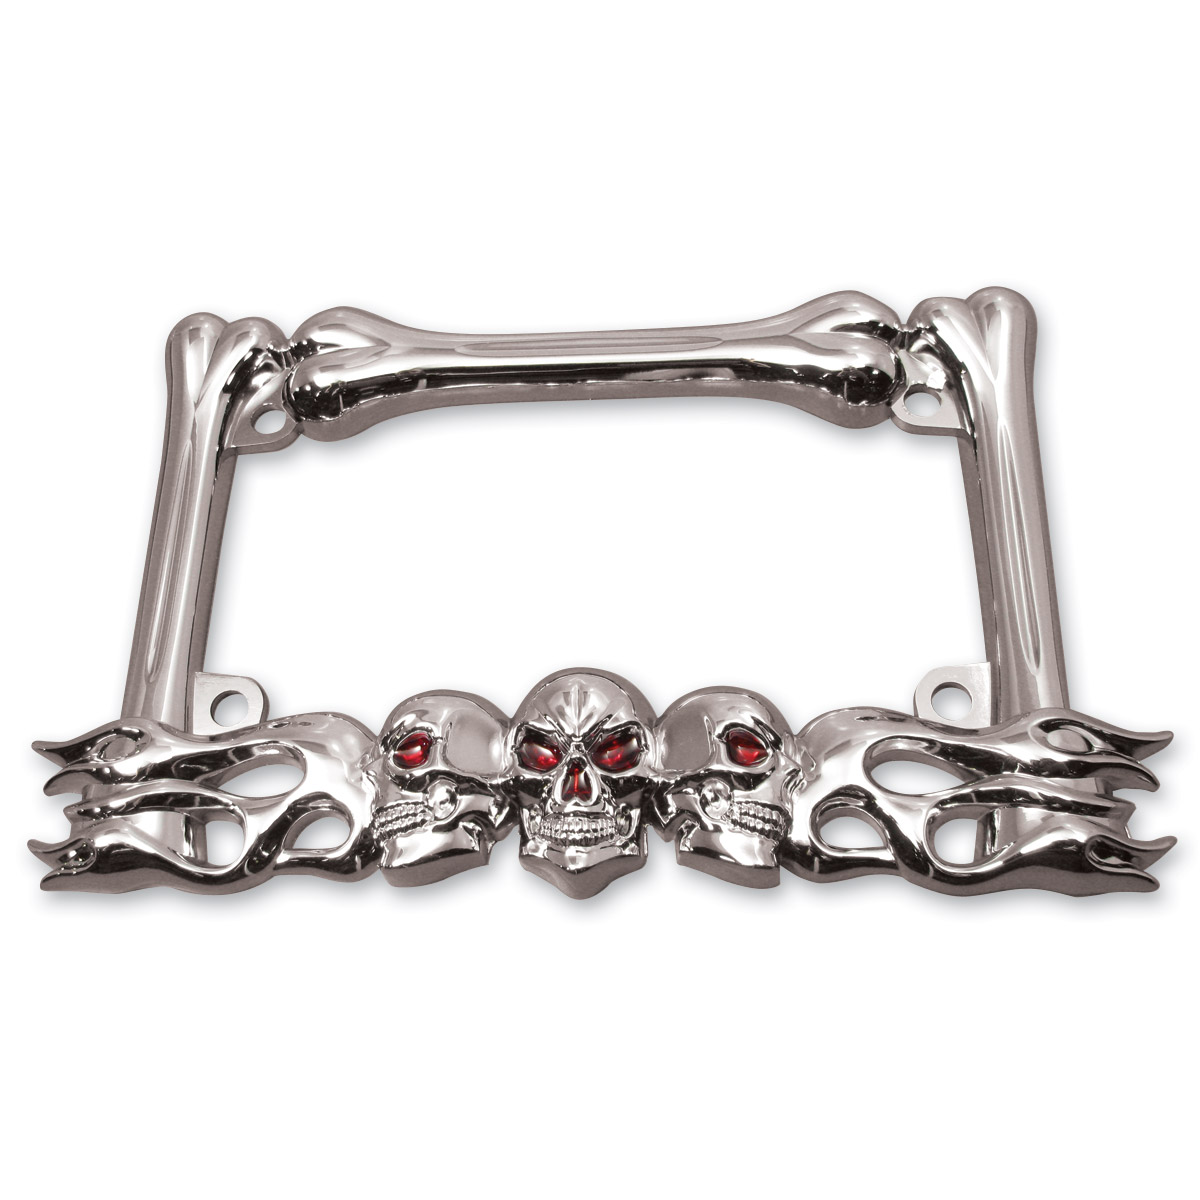 Milwaukee Twins Chrome Skull License Plate Frame | 305-089 | J&P Cycles